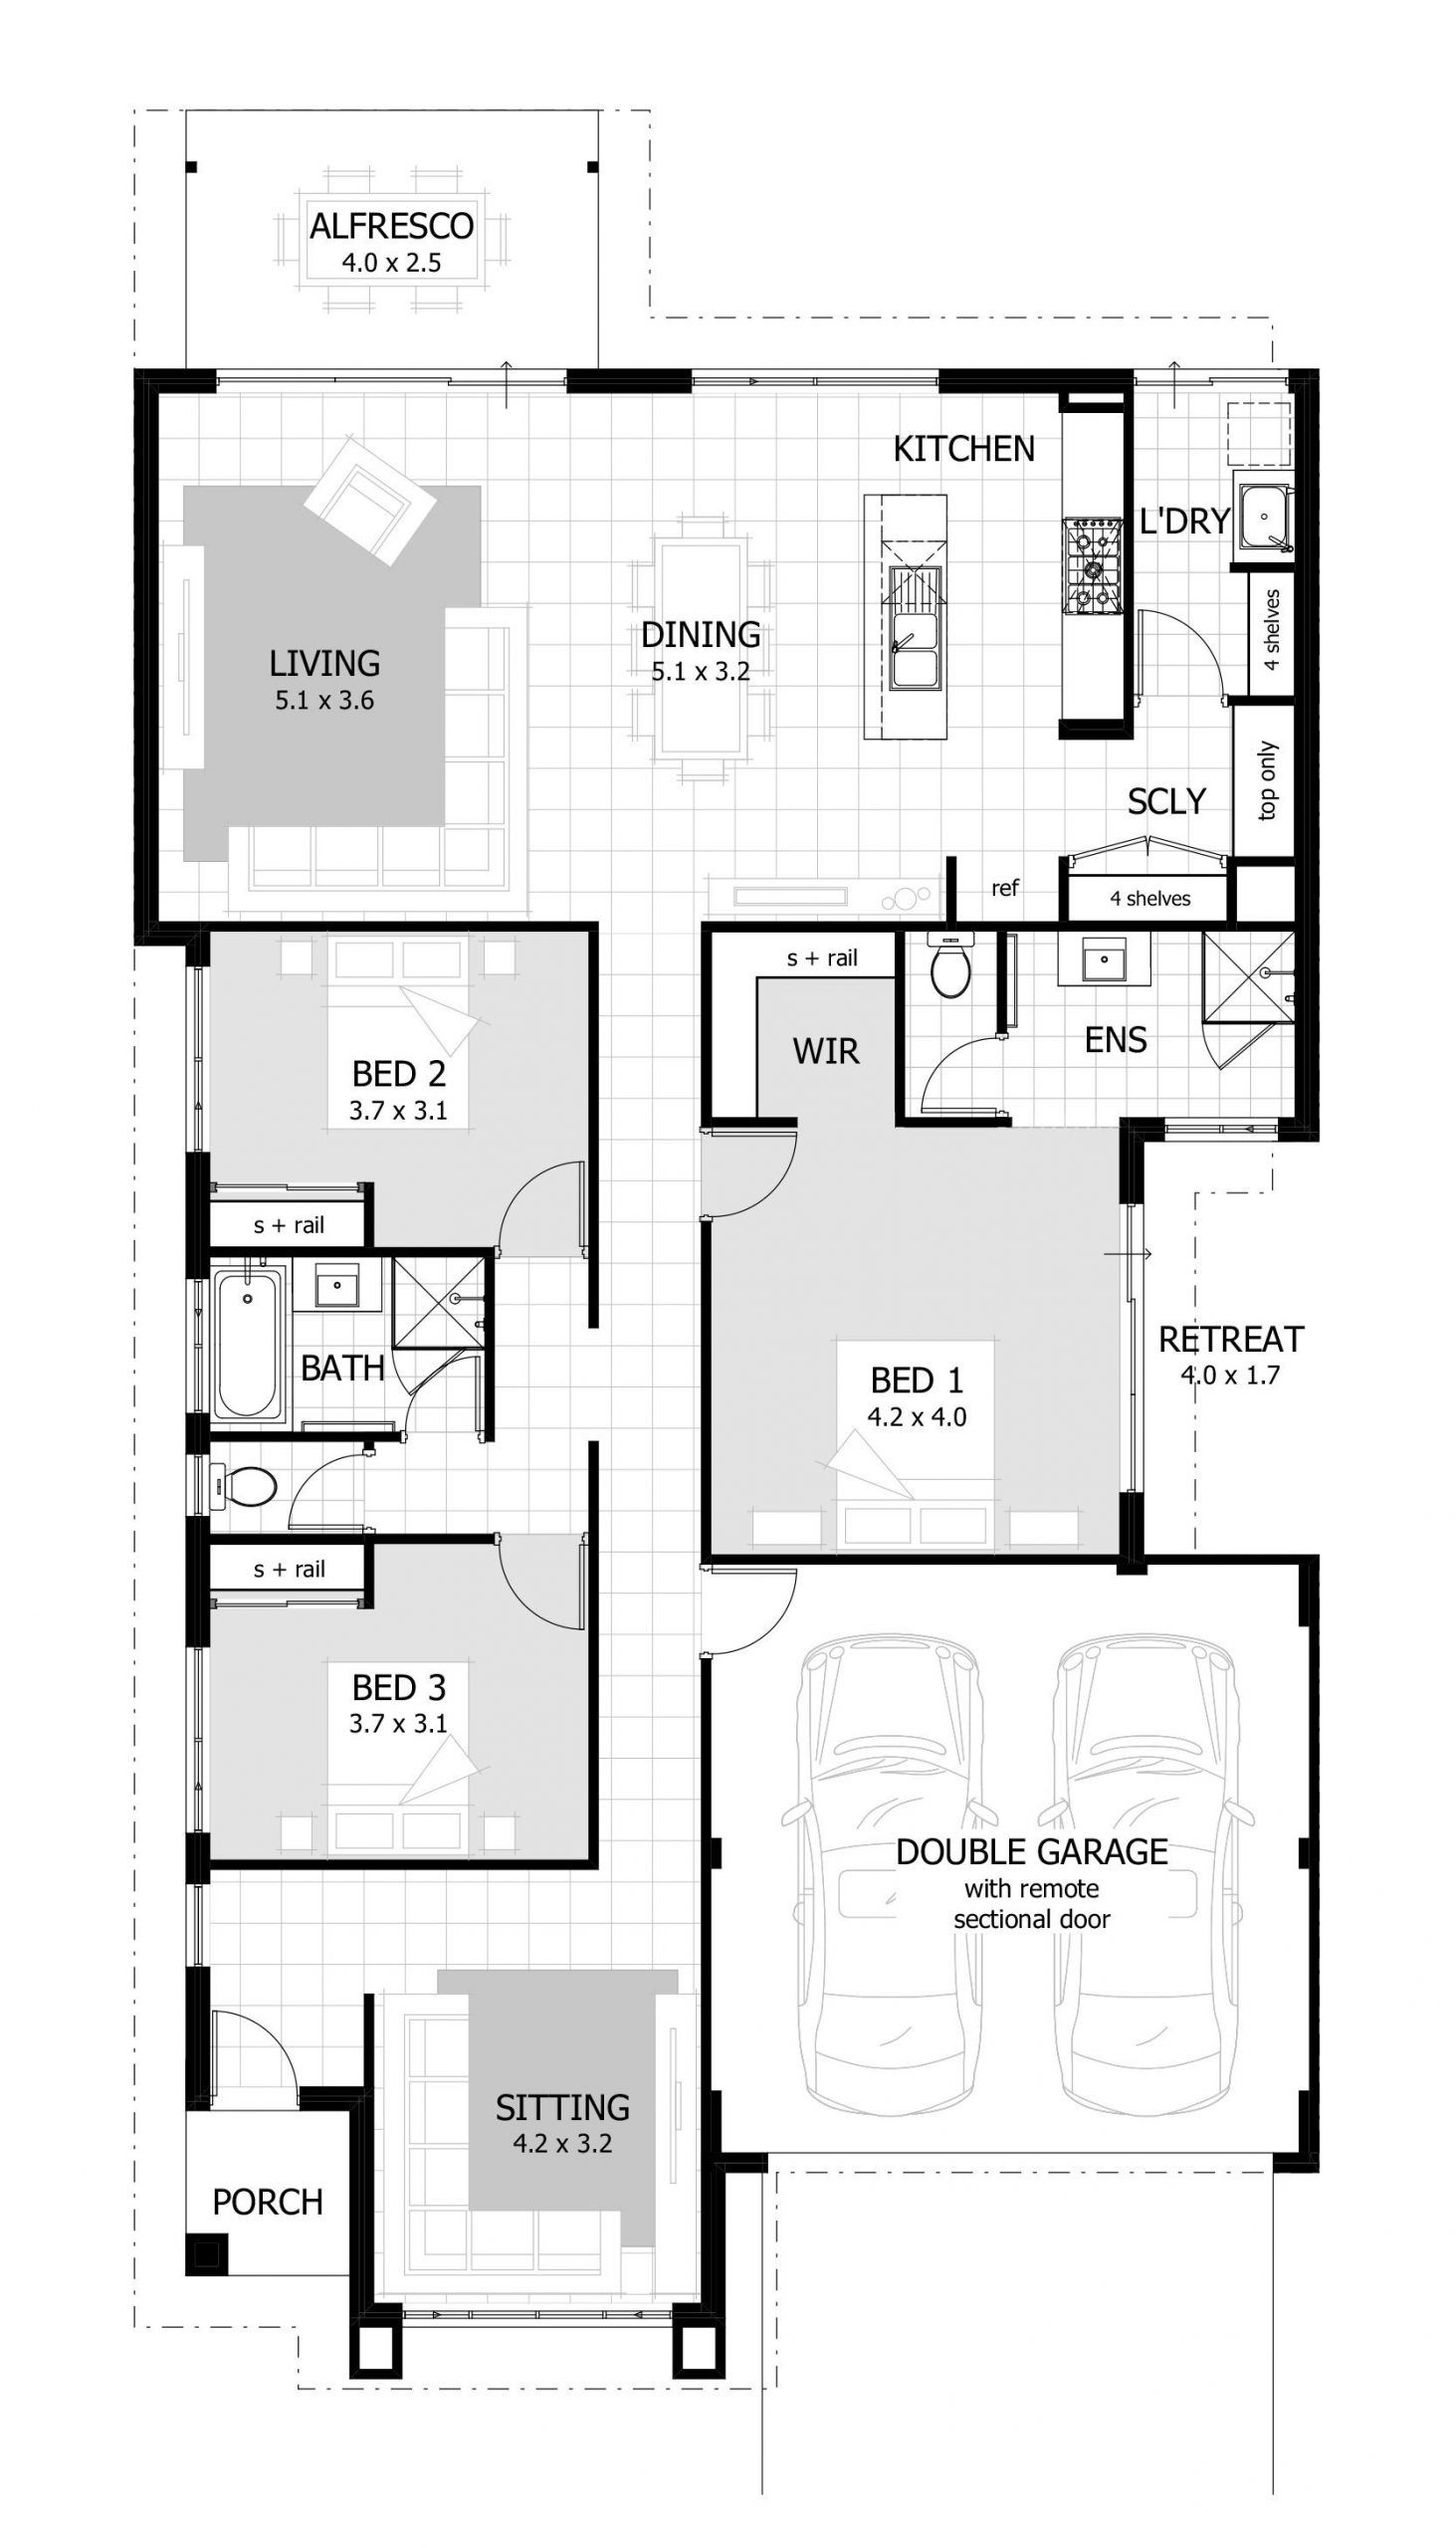 House Plans 3 Bedroom And Double Garage 2021 Denah Rumah Desain Rumah Rumah